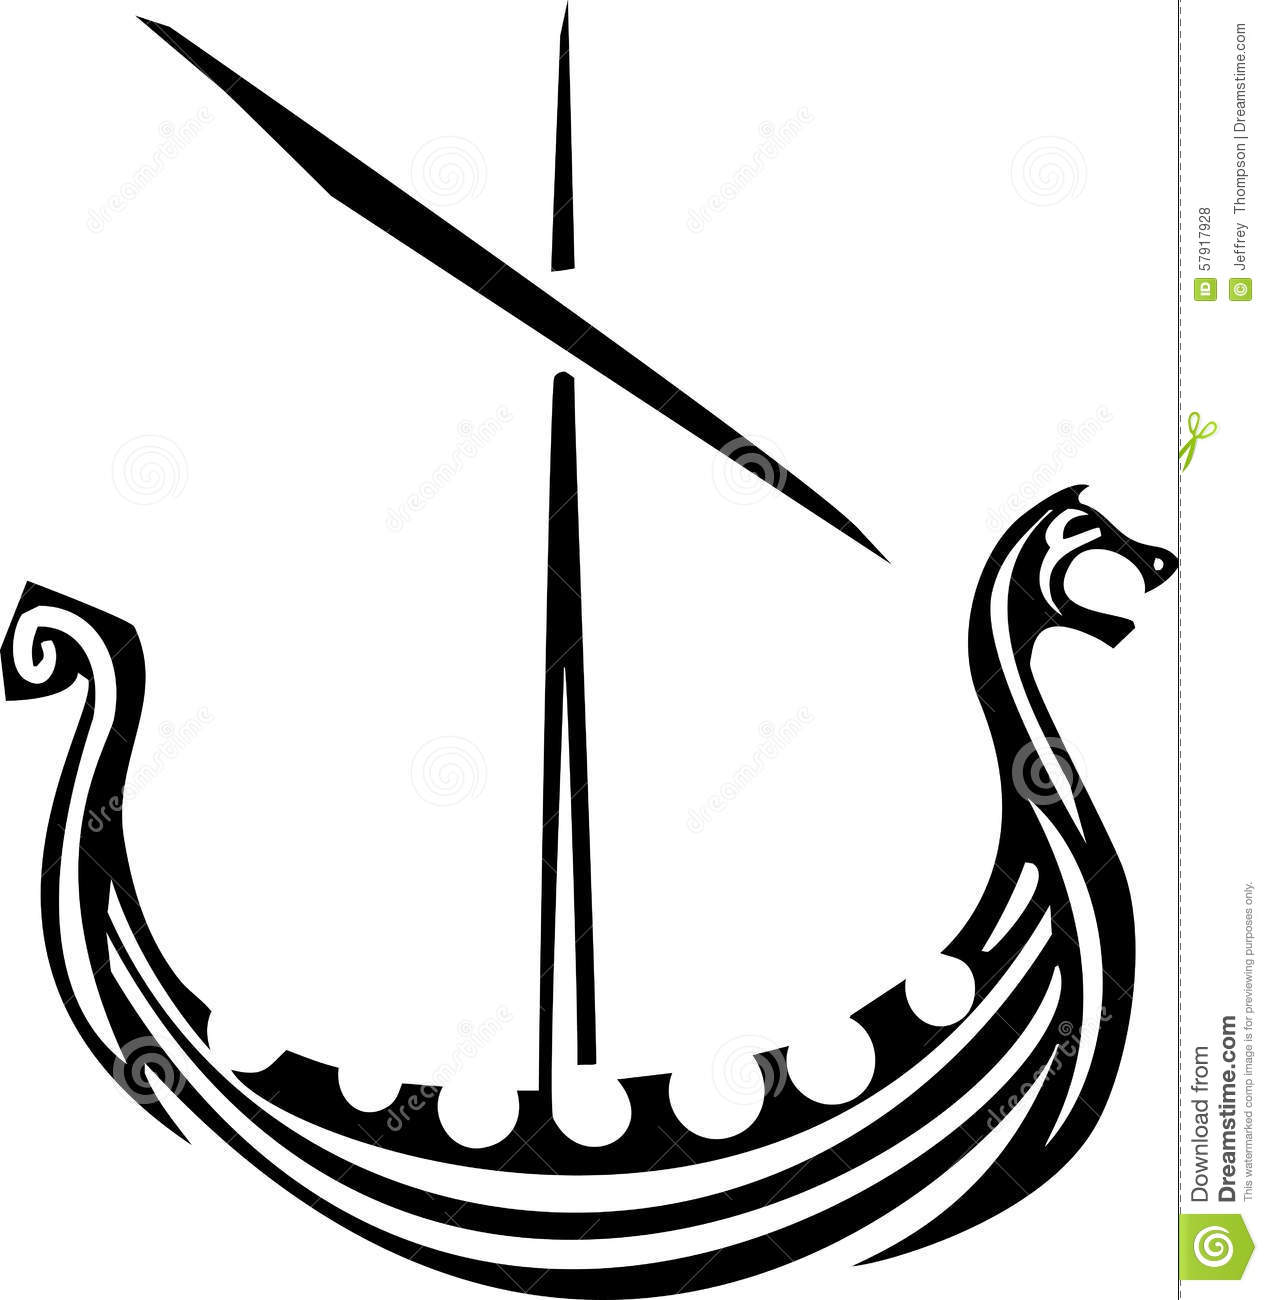 Viking Ship Stock Vector - Image: 57917928